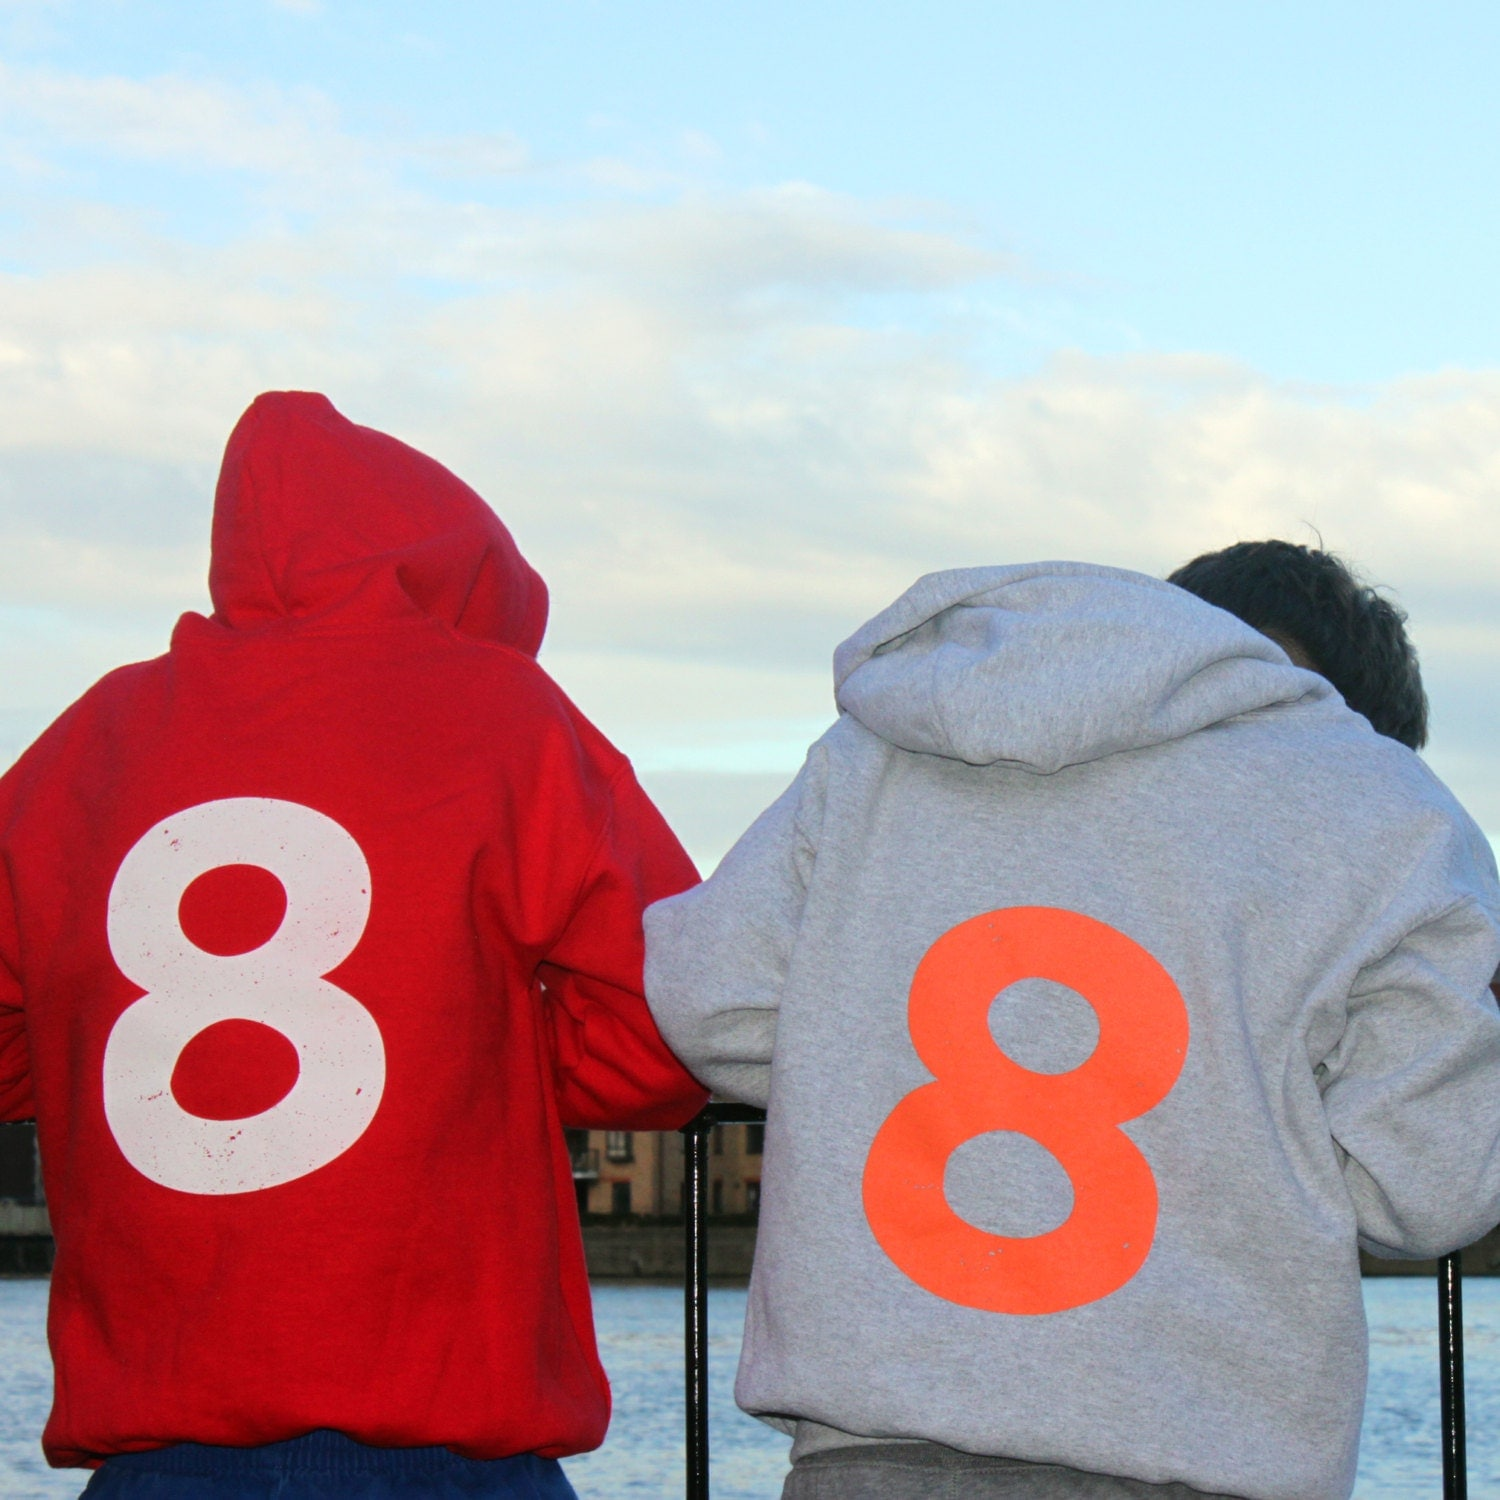 Catapult Hoodie 8 Pull On Hooded Top Gray and Orange Catapult logo on the front number 8 eight on the back retro design for cool kids